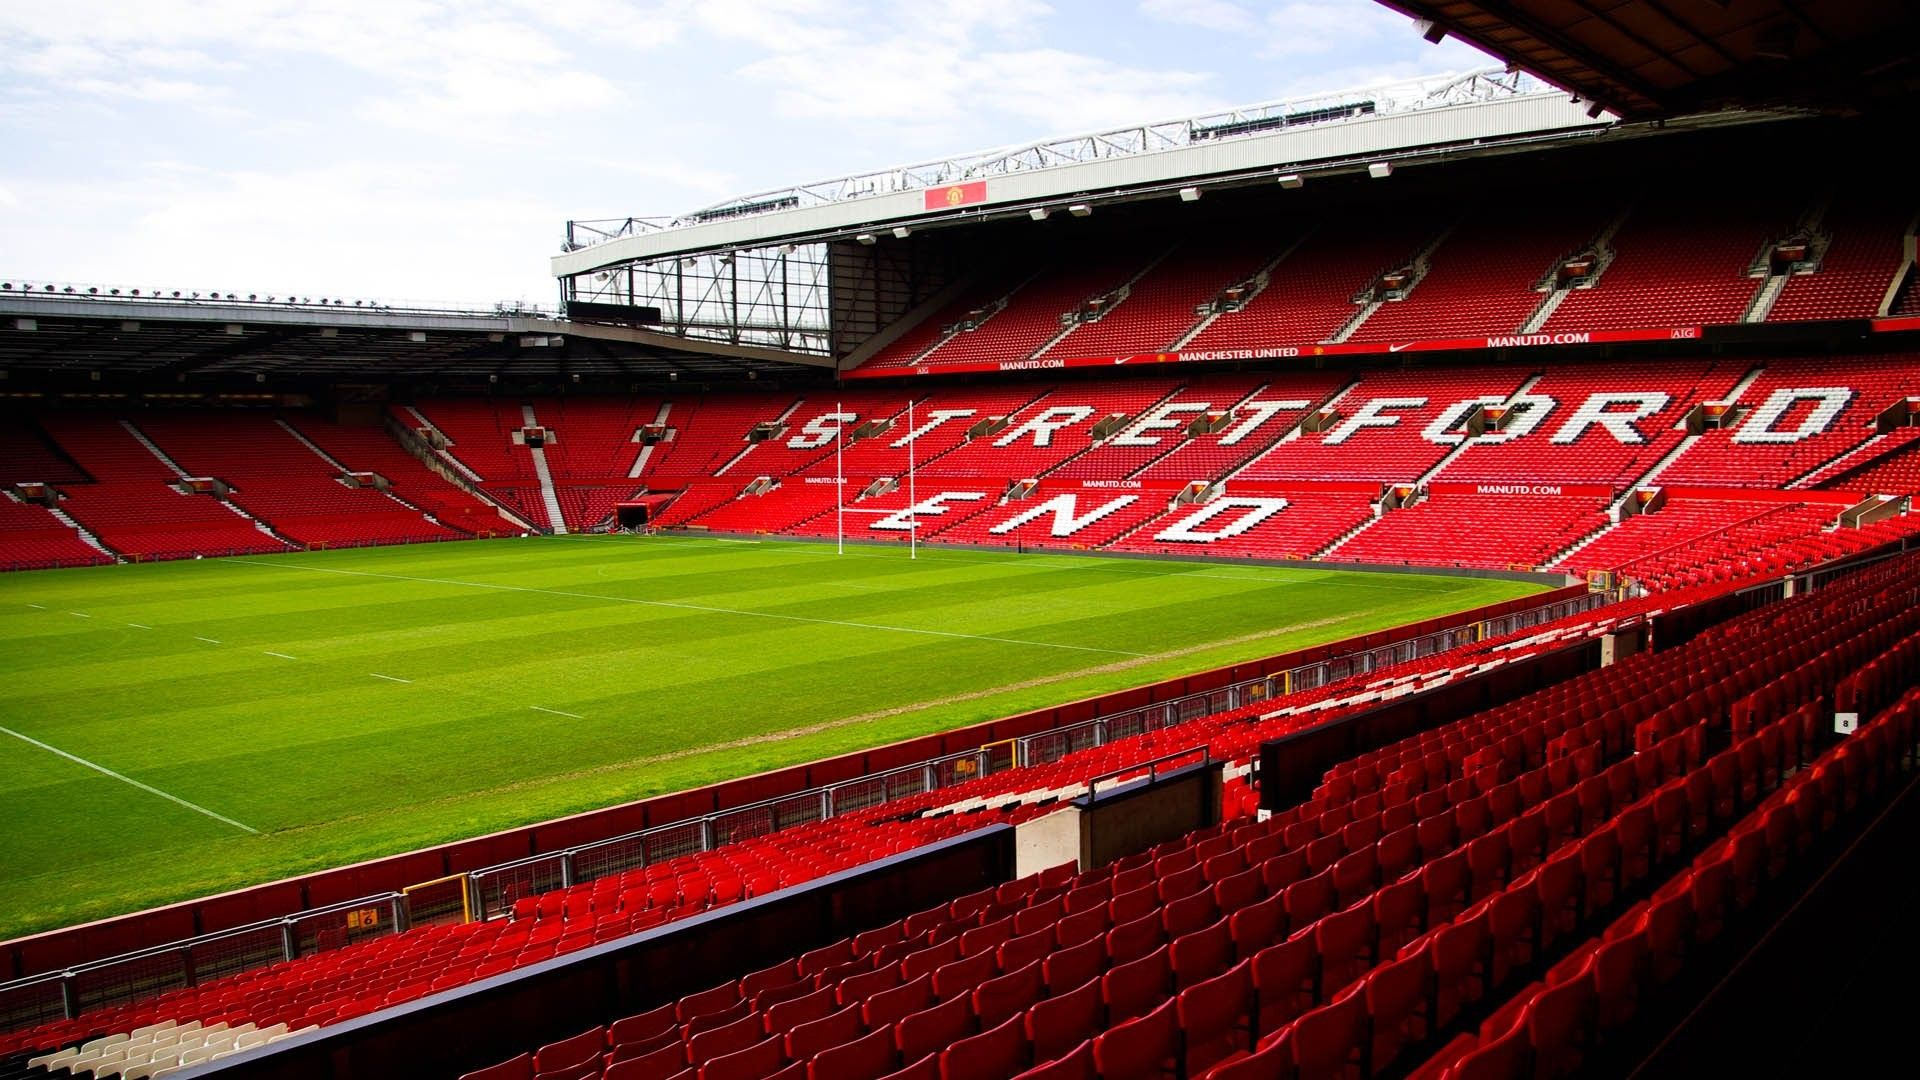 old trafford hd wallpapers for desktop in 2020 manchester united wallpaper old trafford trafford old trafford hd wallpapers for desktop